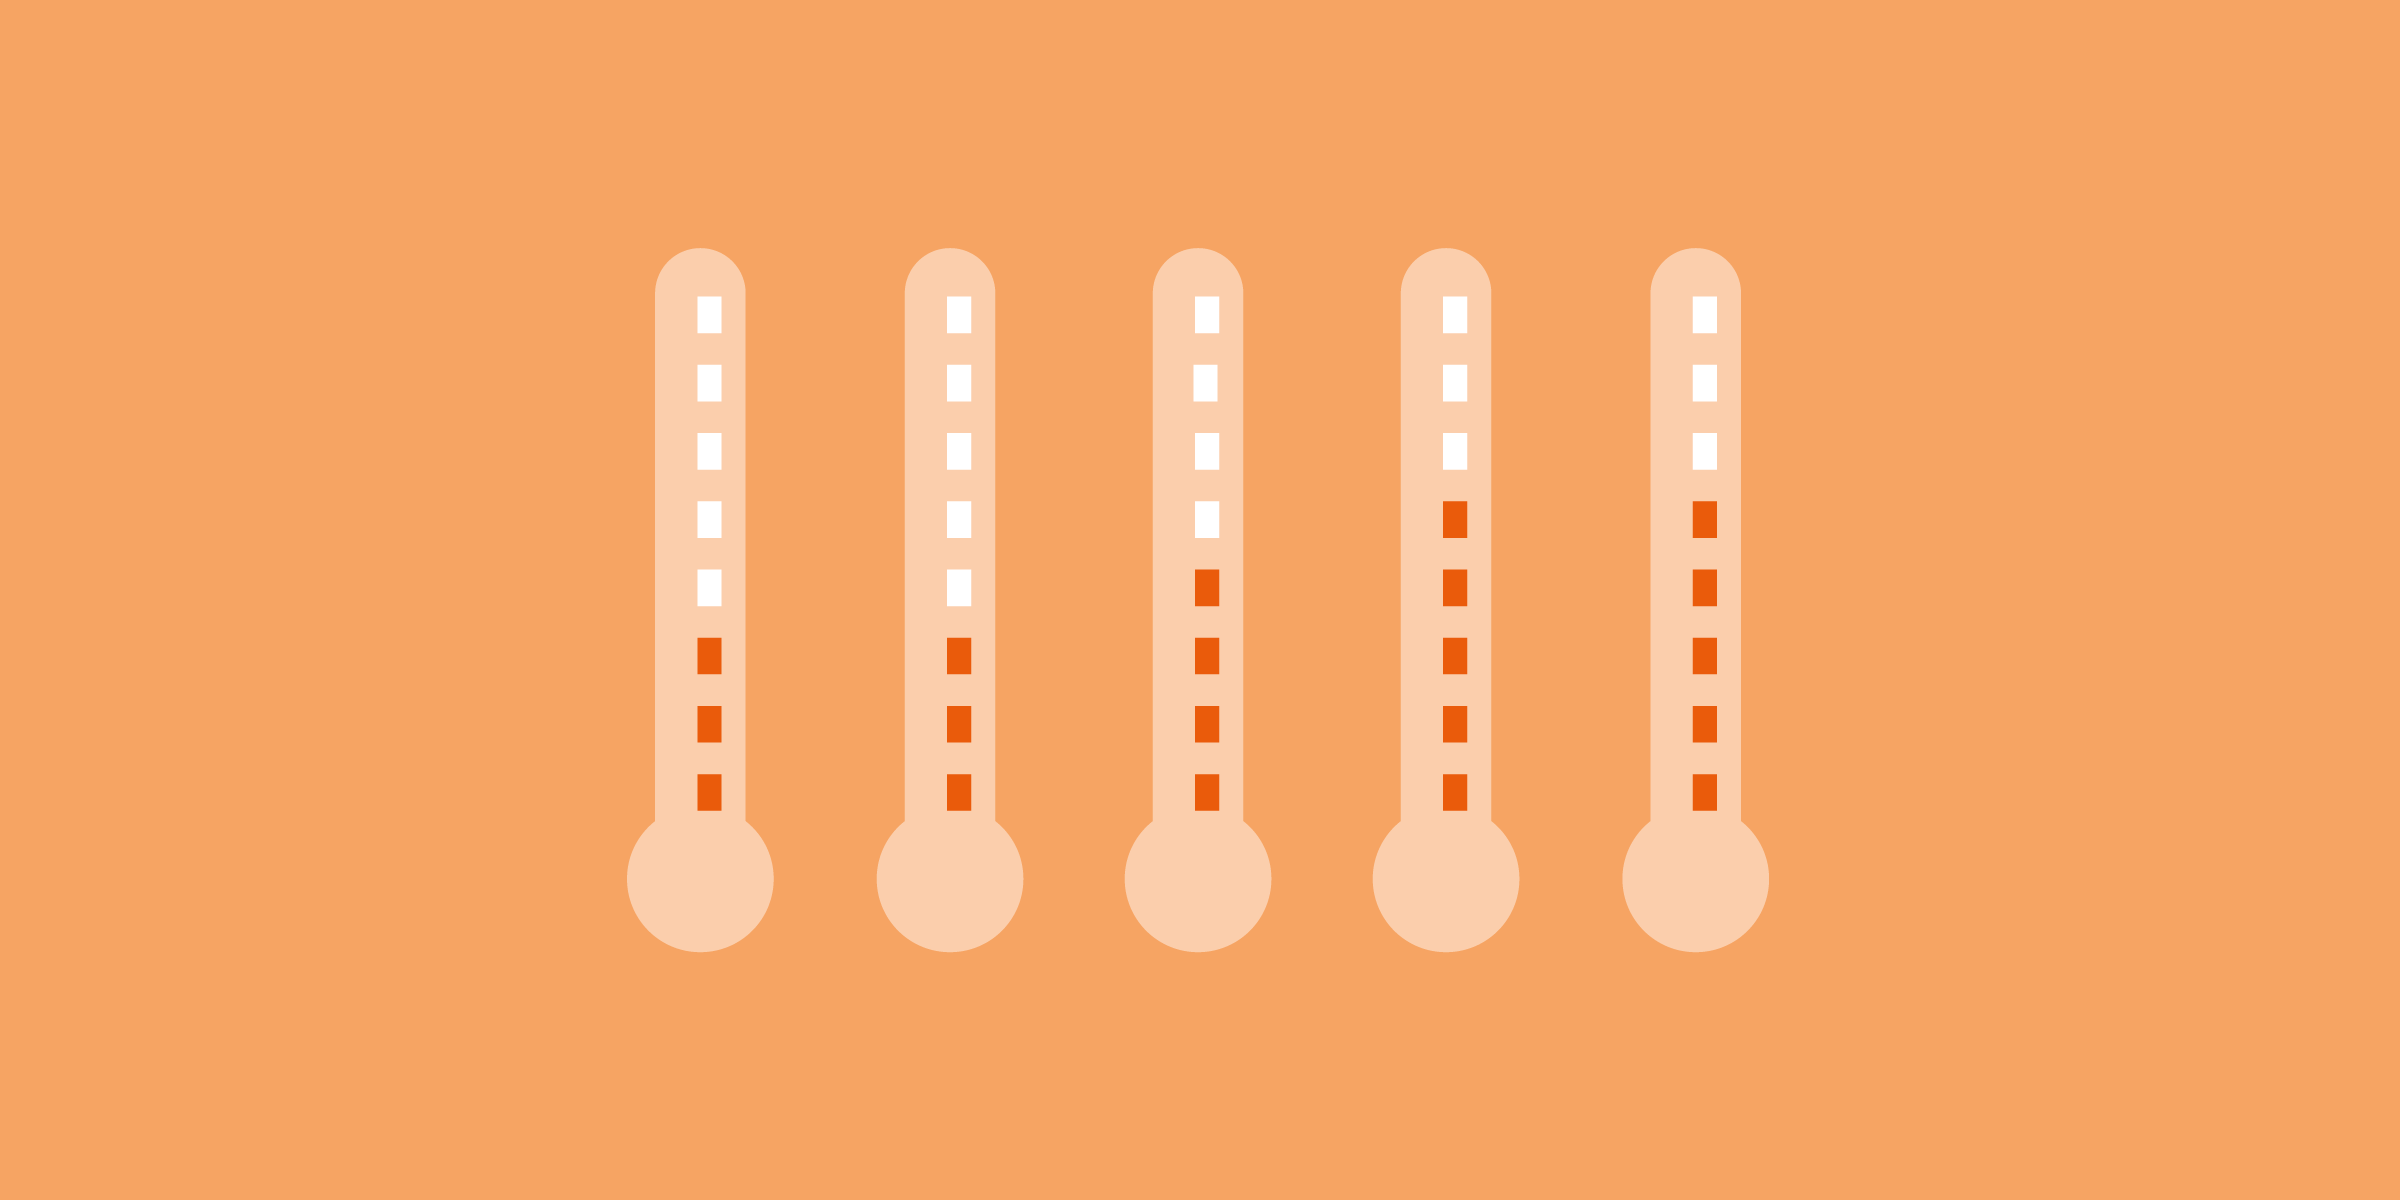 Thermometers with different temperatures, on orange background